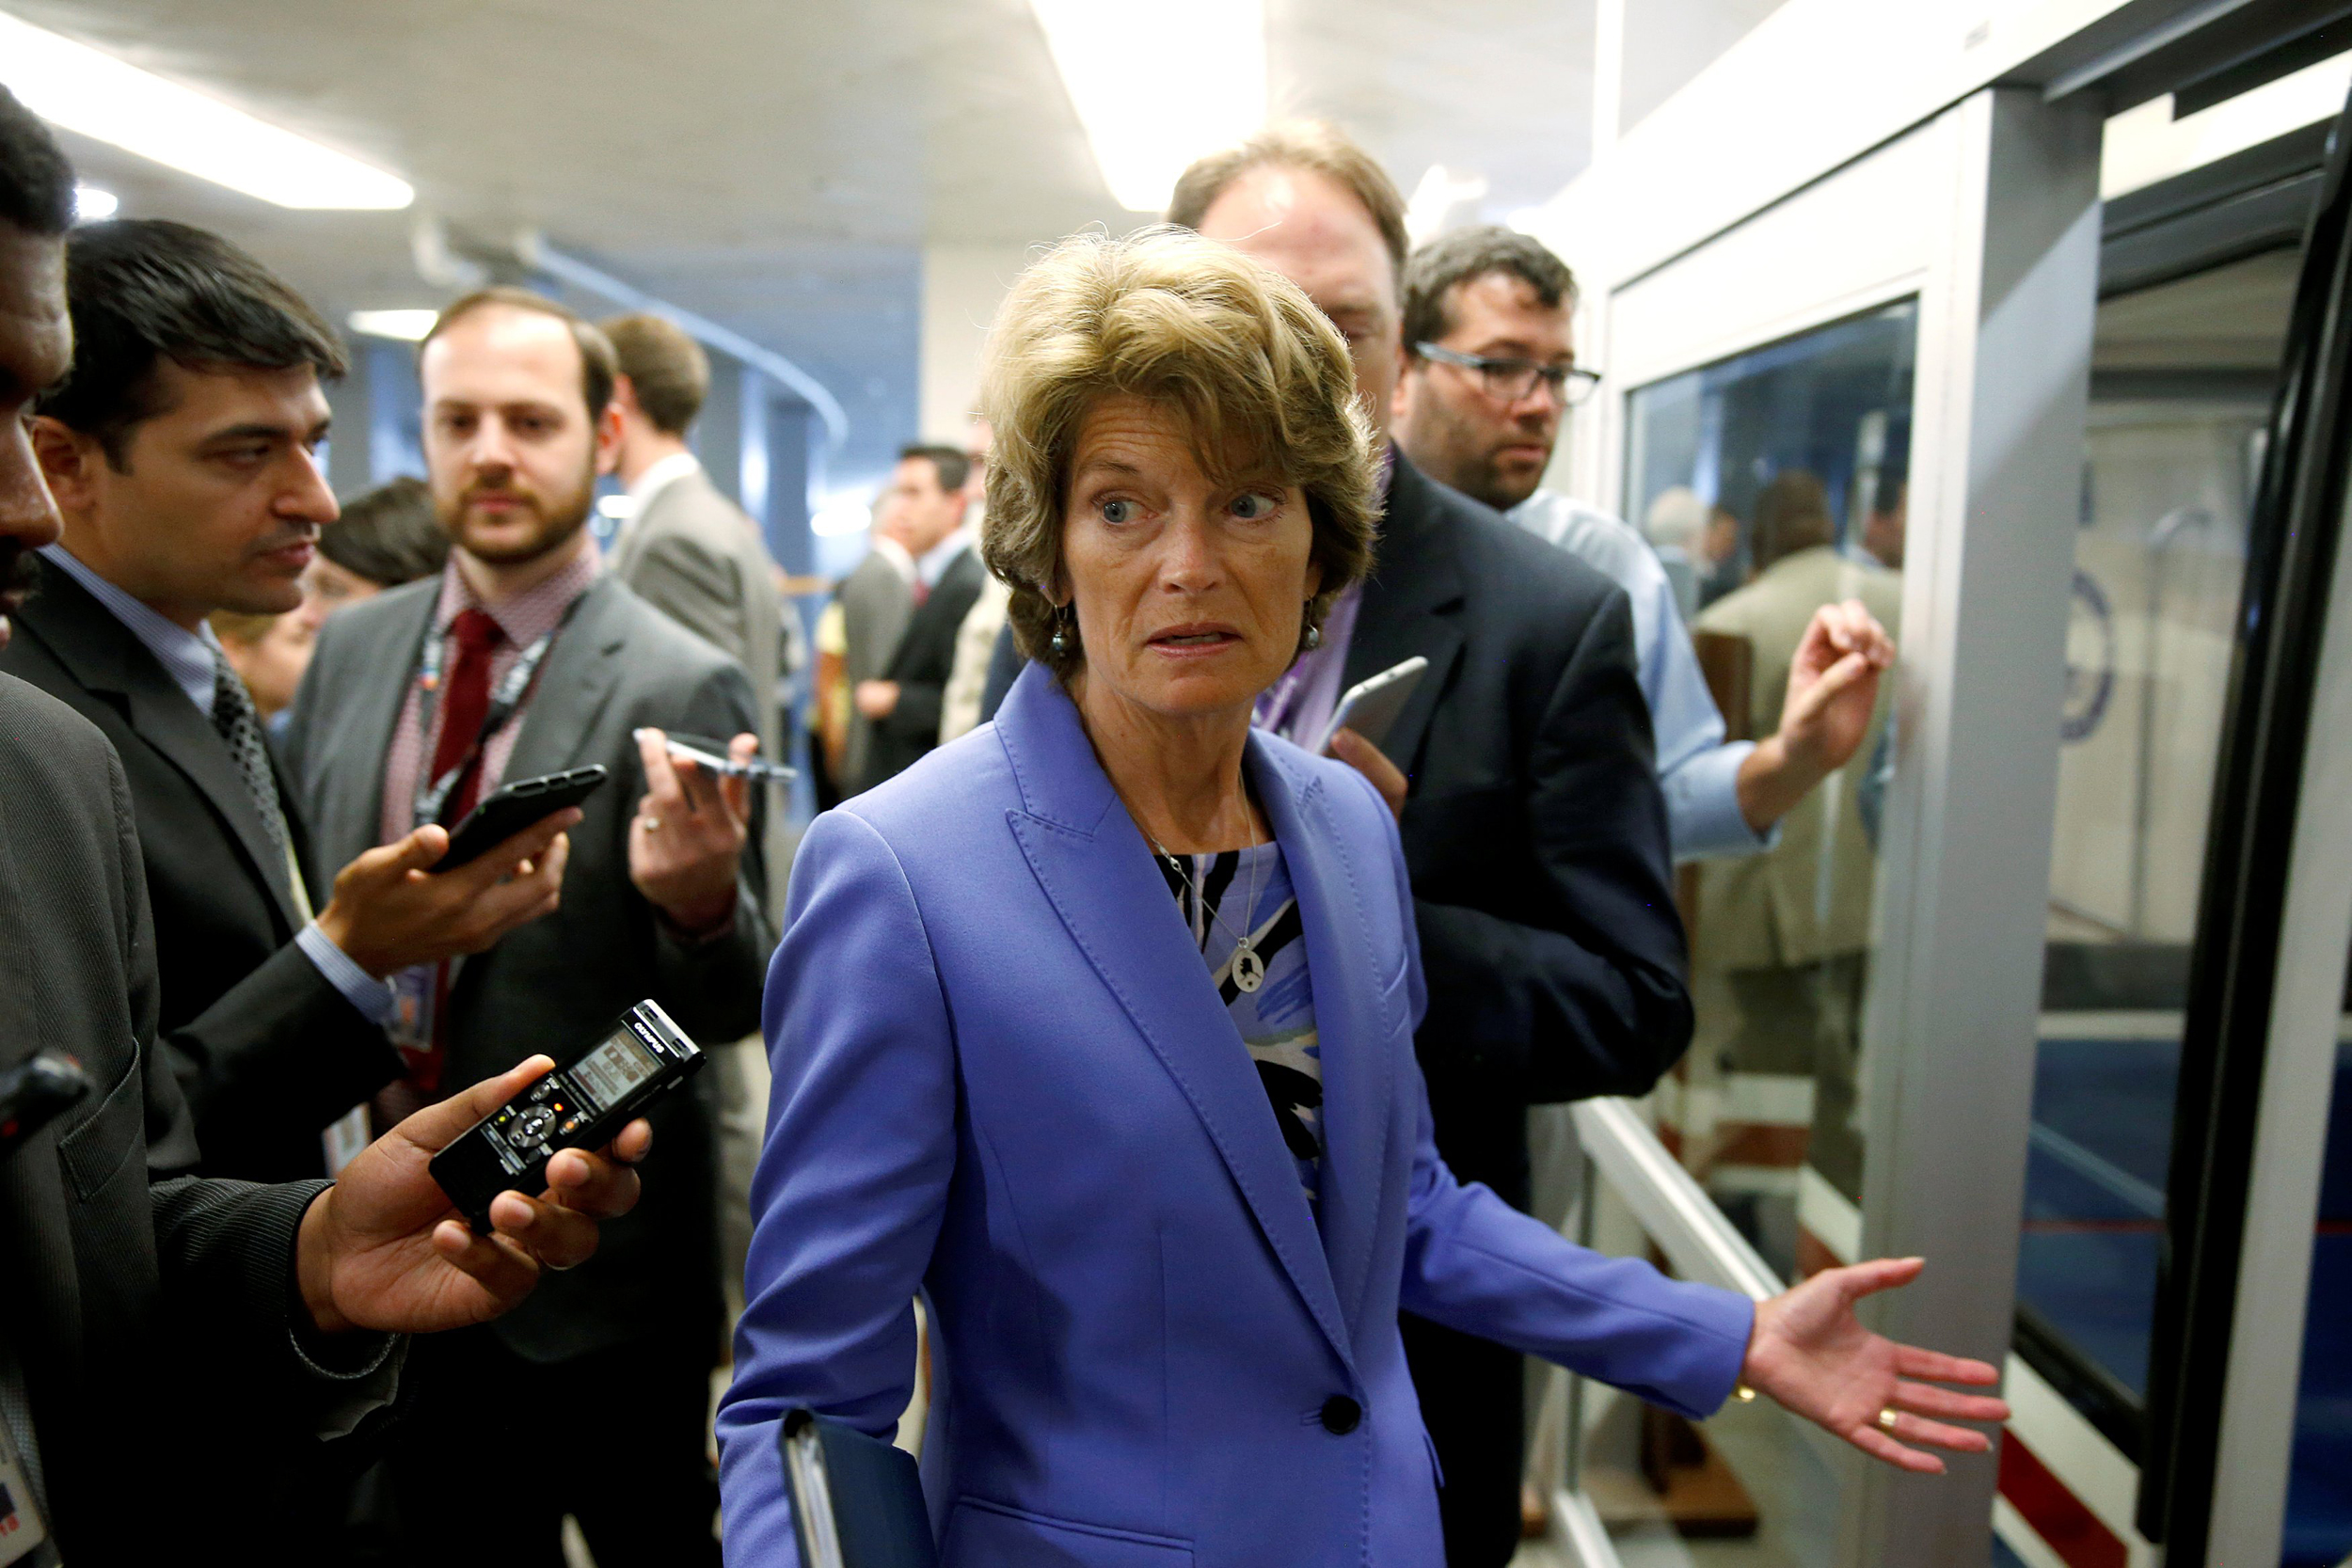 Image: Senator Lisa Murkowski (R-AK) speaks to reporters after the Senate approved $15.25 billion in aid for areas affected by Hurricane Harvey in Washington